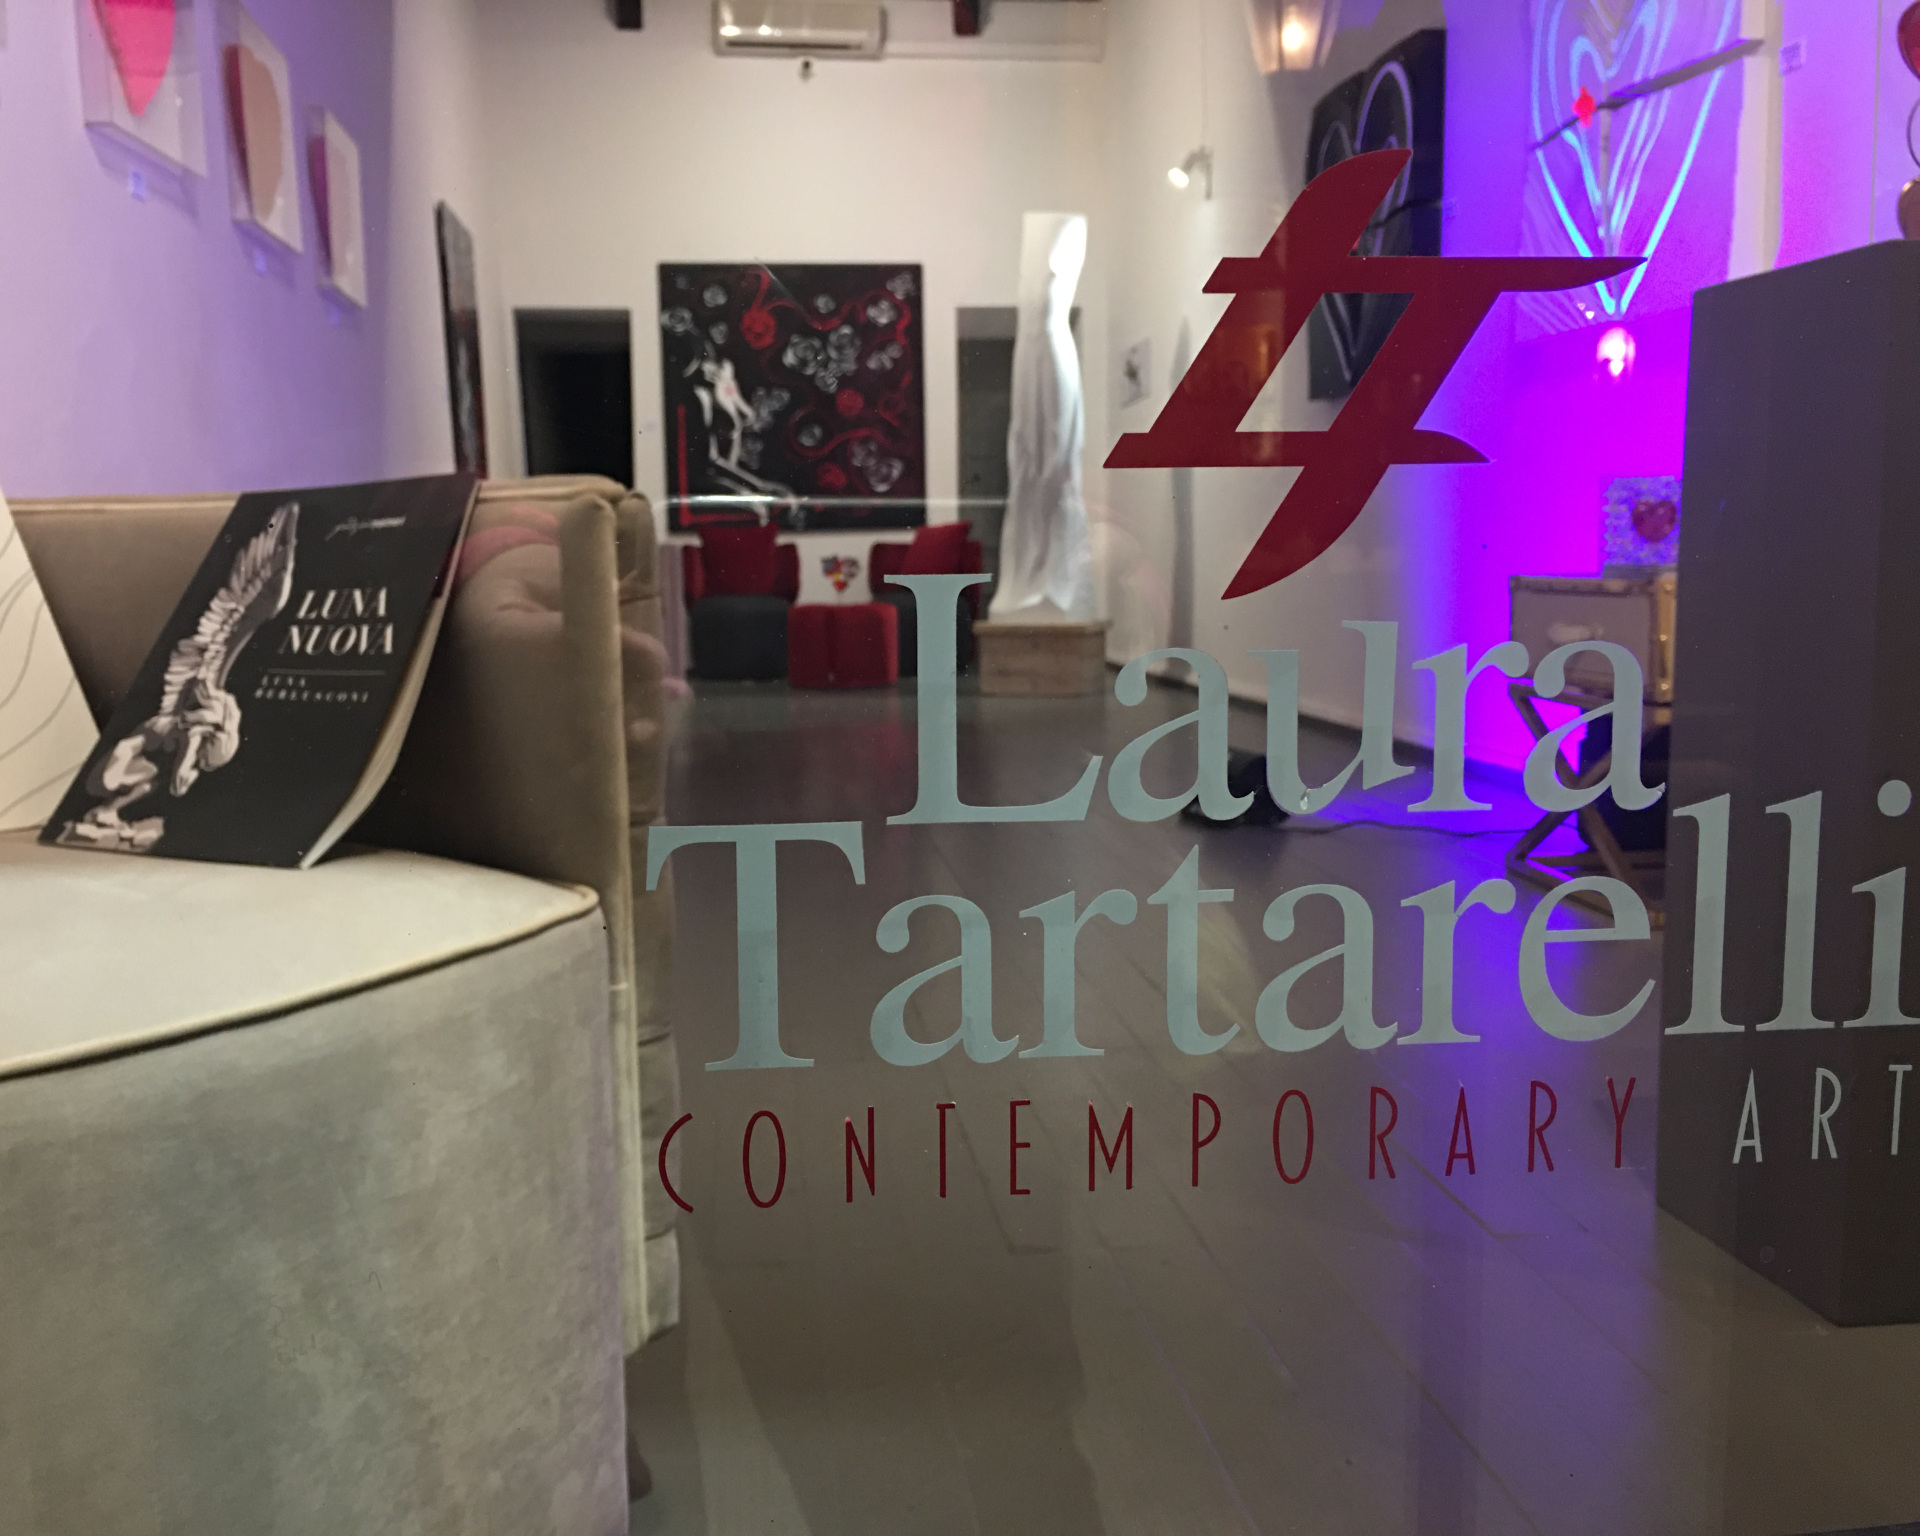 laura tartarelli contemporary art pietrasanta